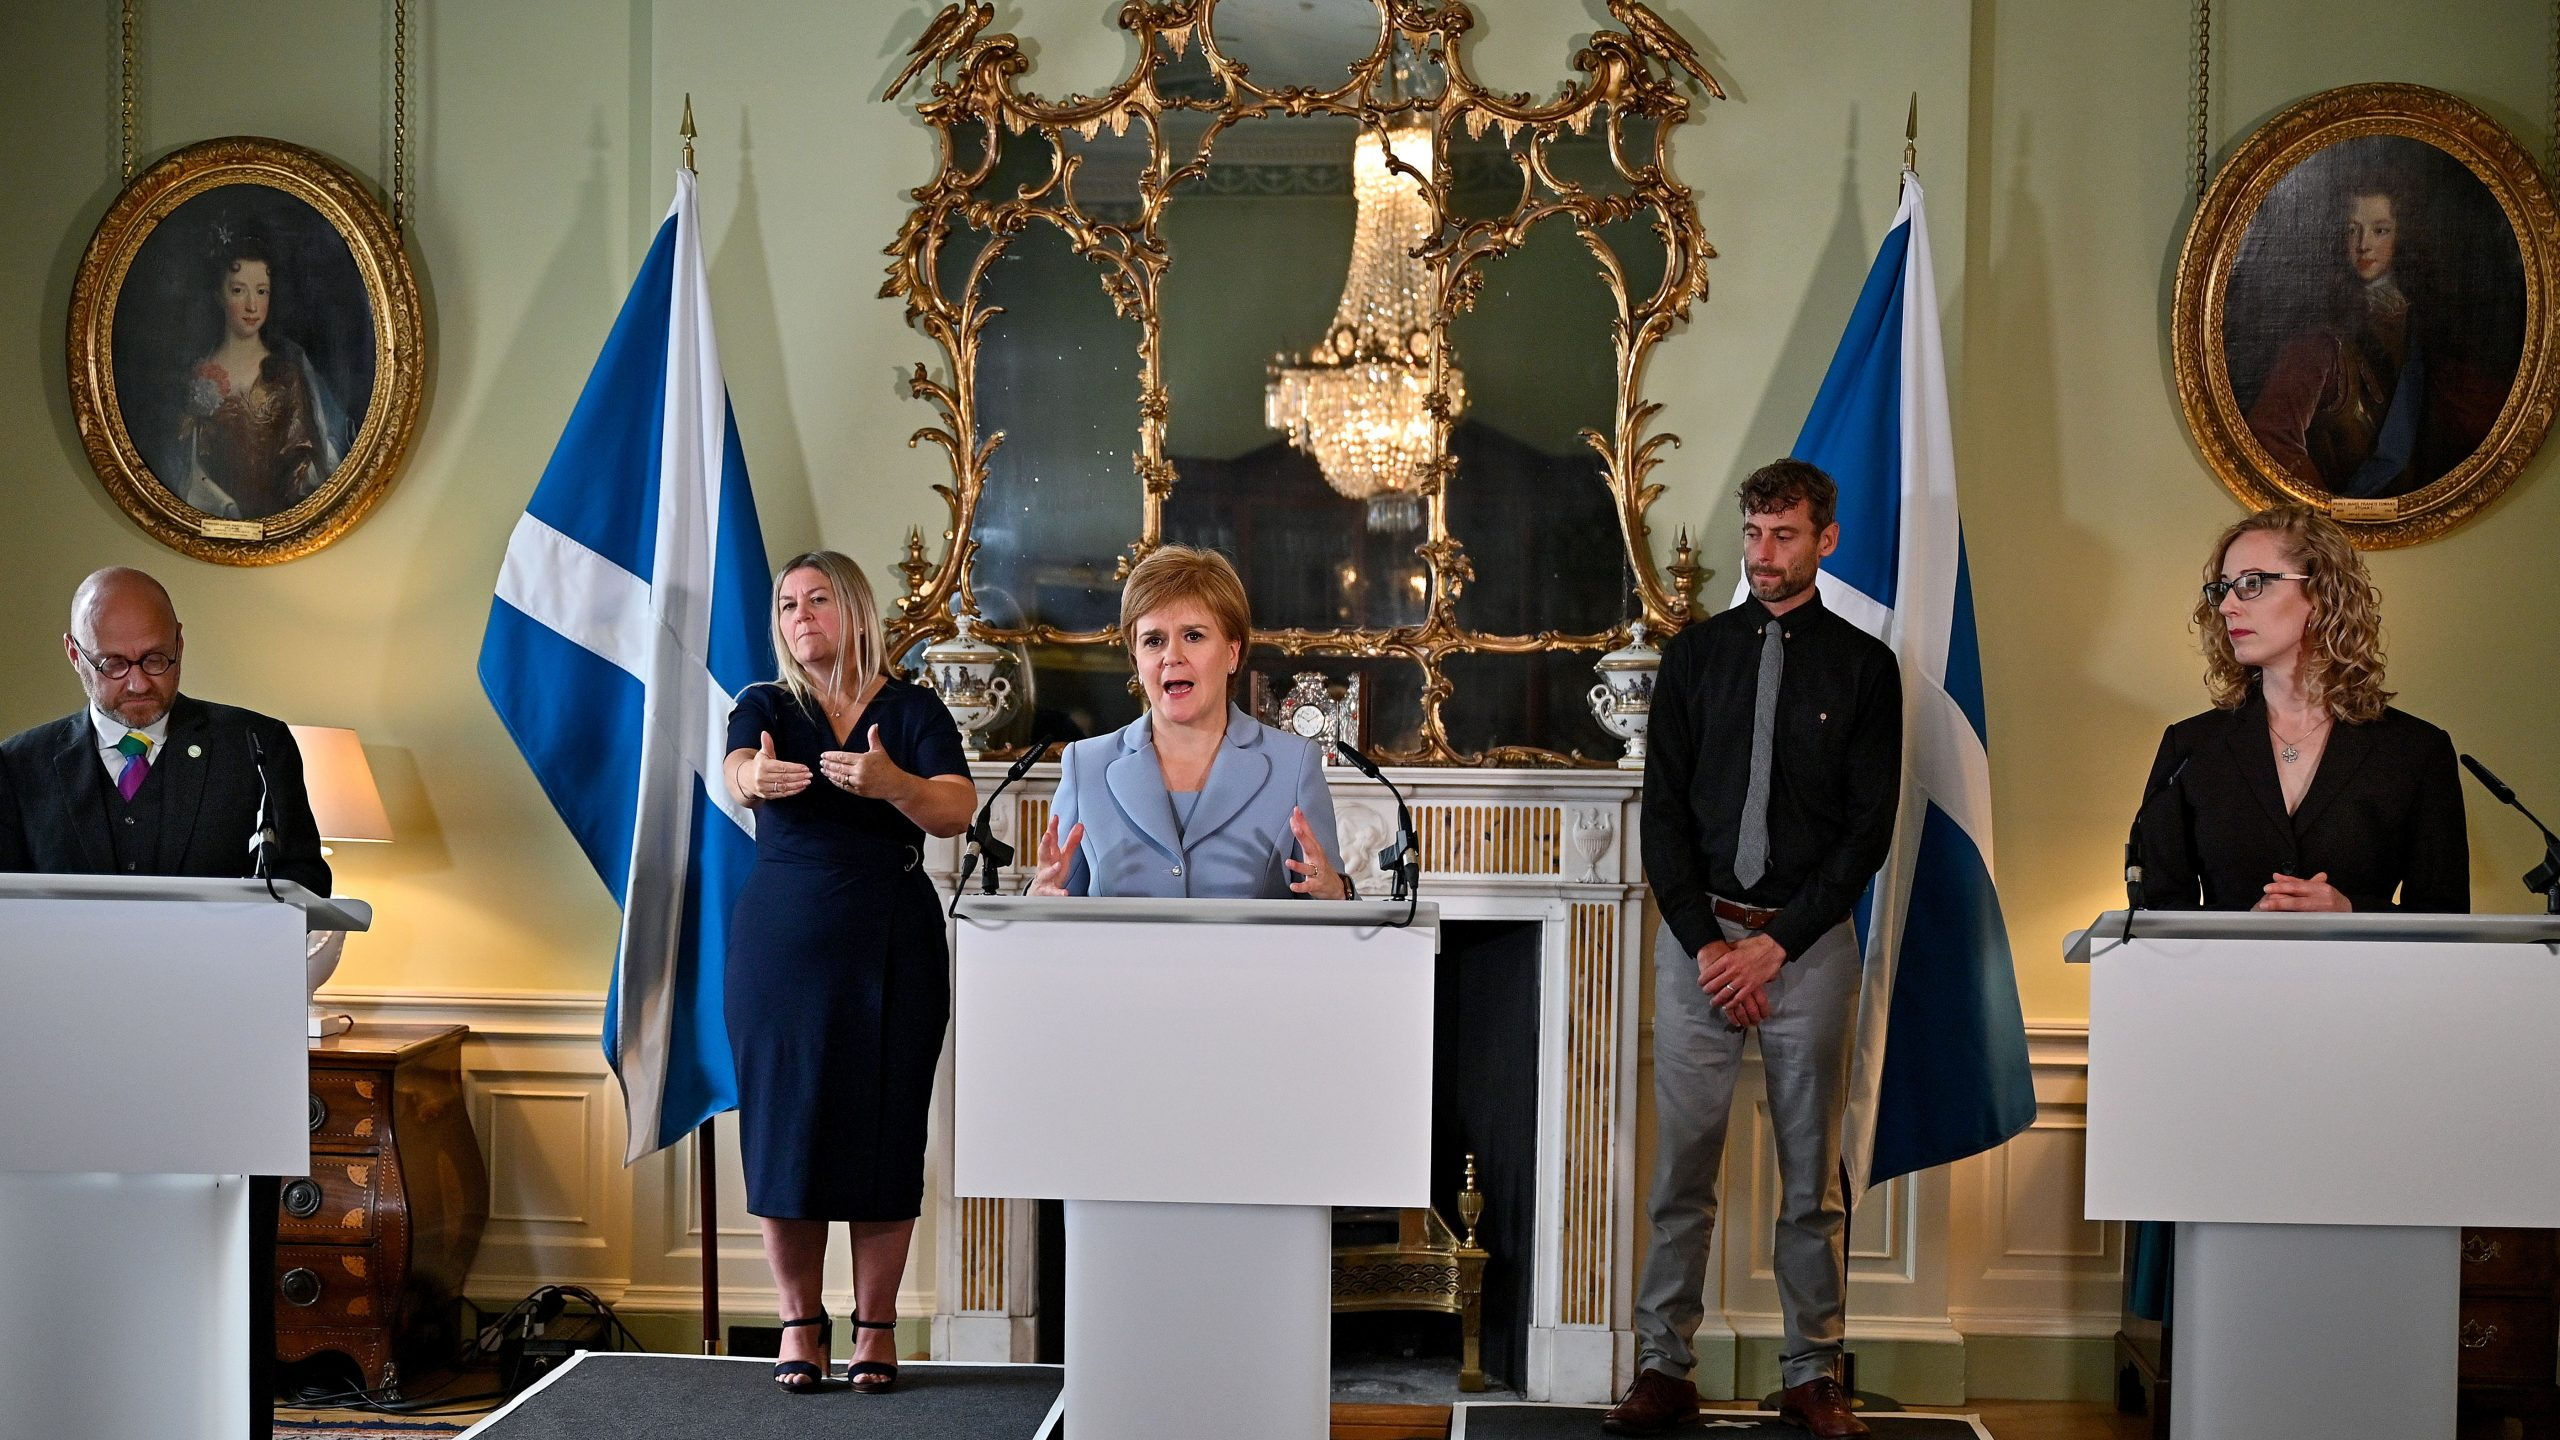 You are currently viewing Nicola Sturgeon's stance on oil and gas has 'changed significantly', claims Greens